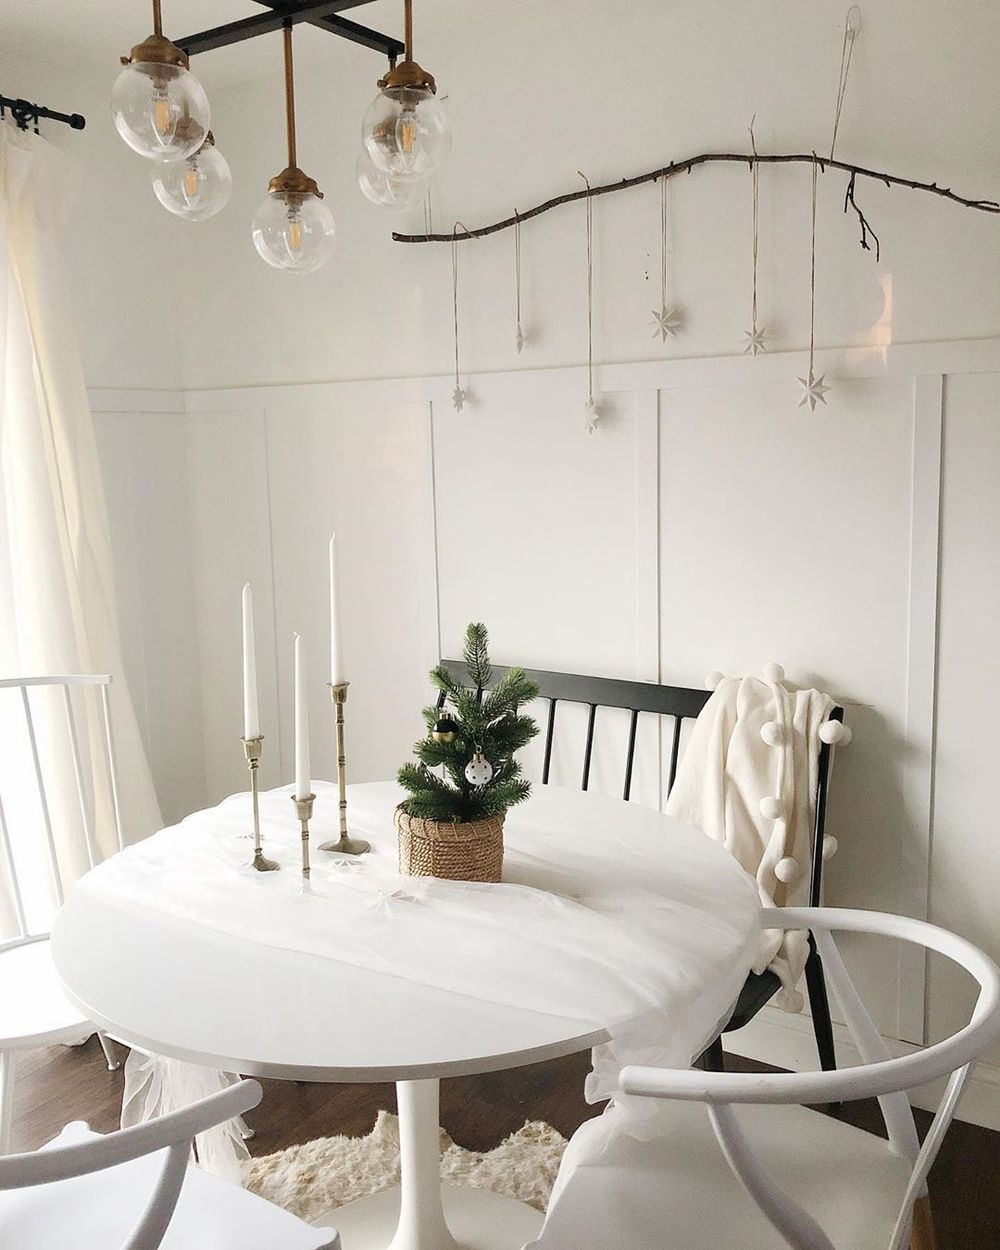 Simple Dining Room Design: 25 Scandinavian Christmas Dining Room Decor Ideas